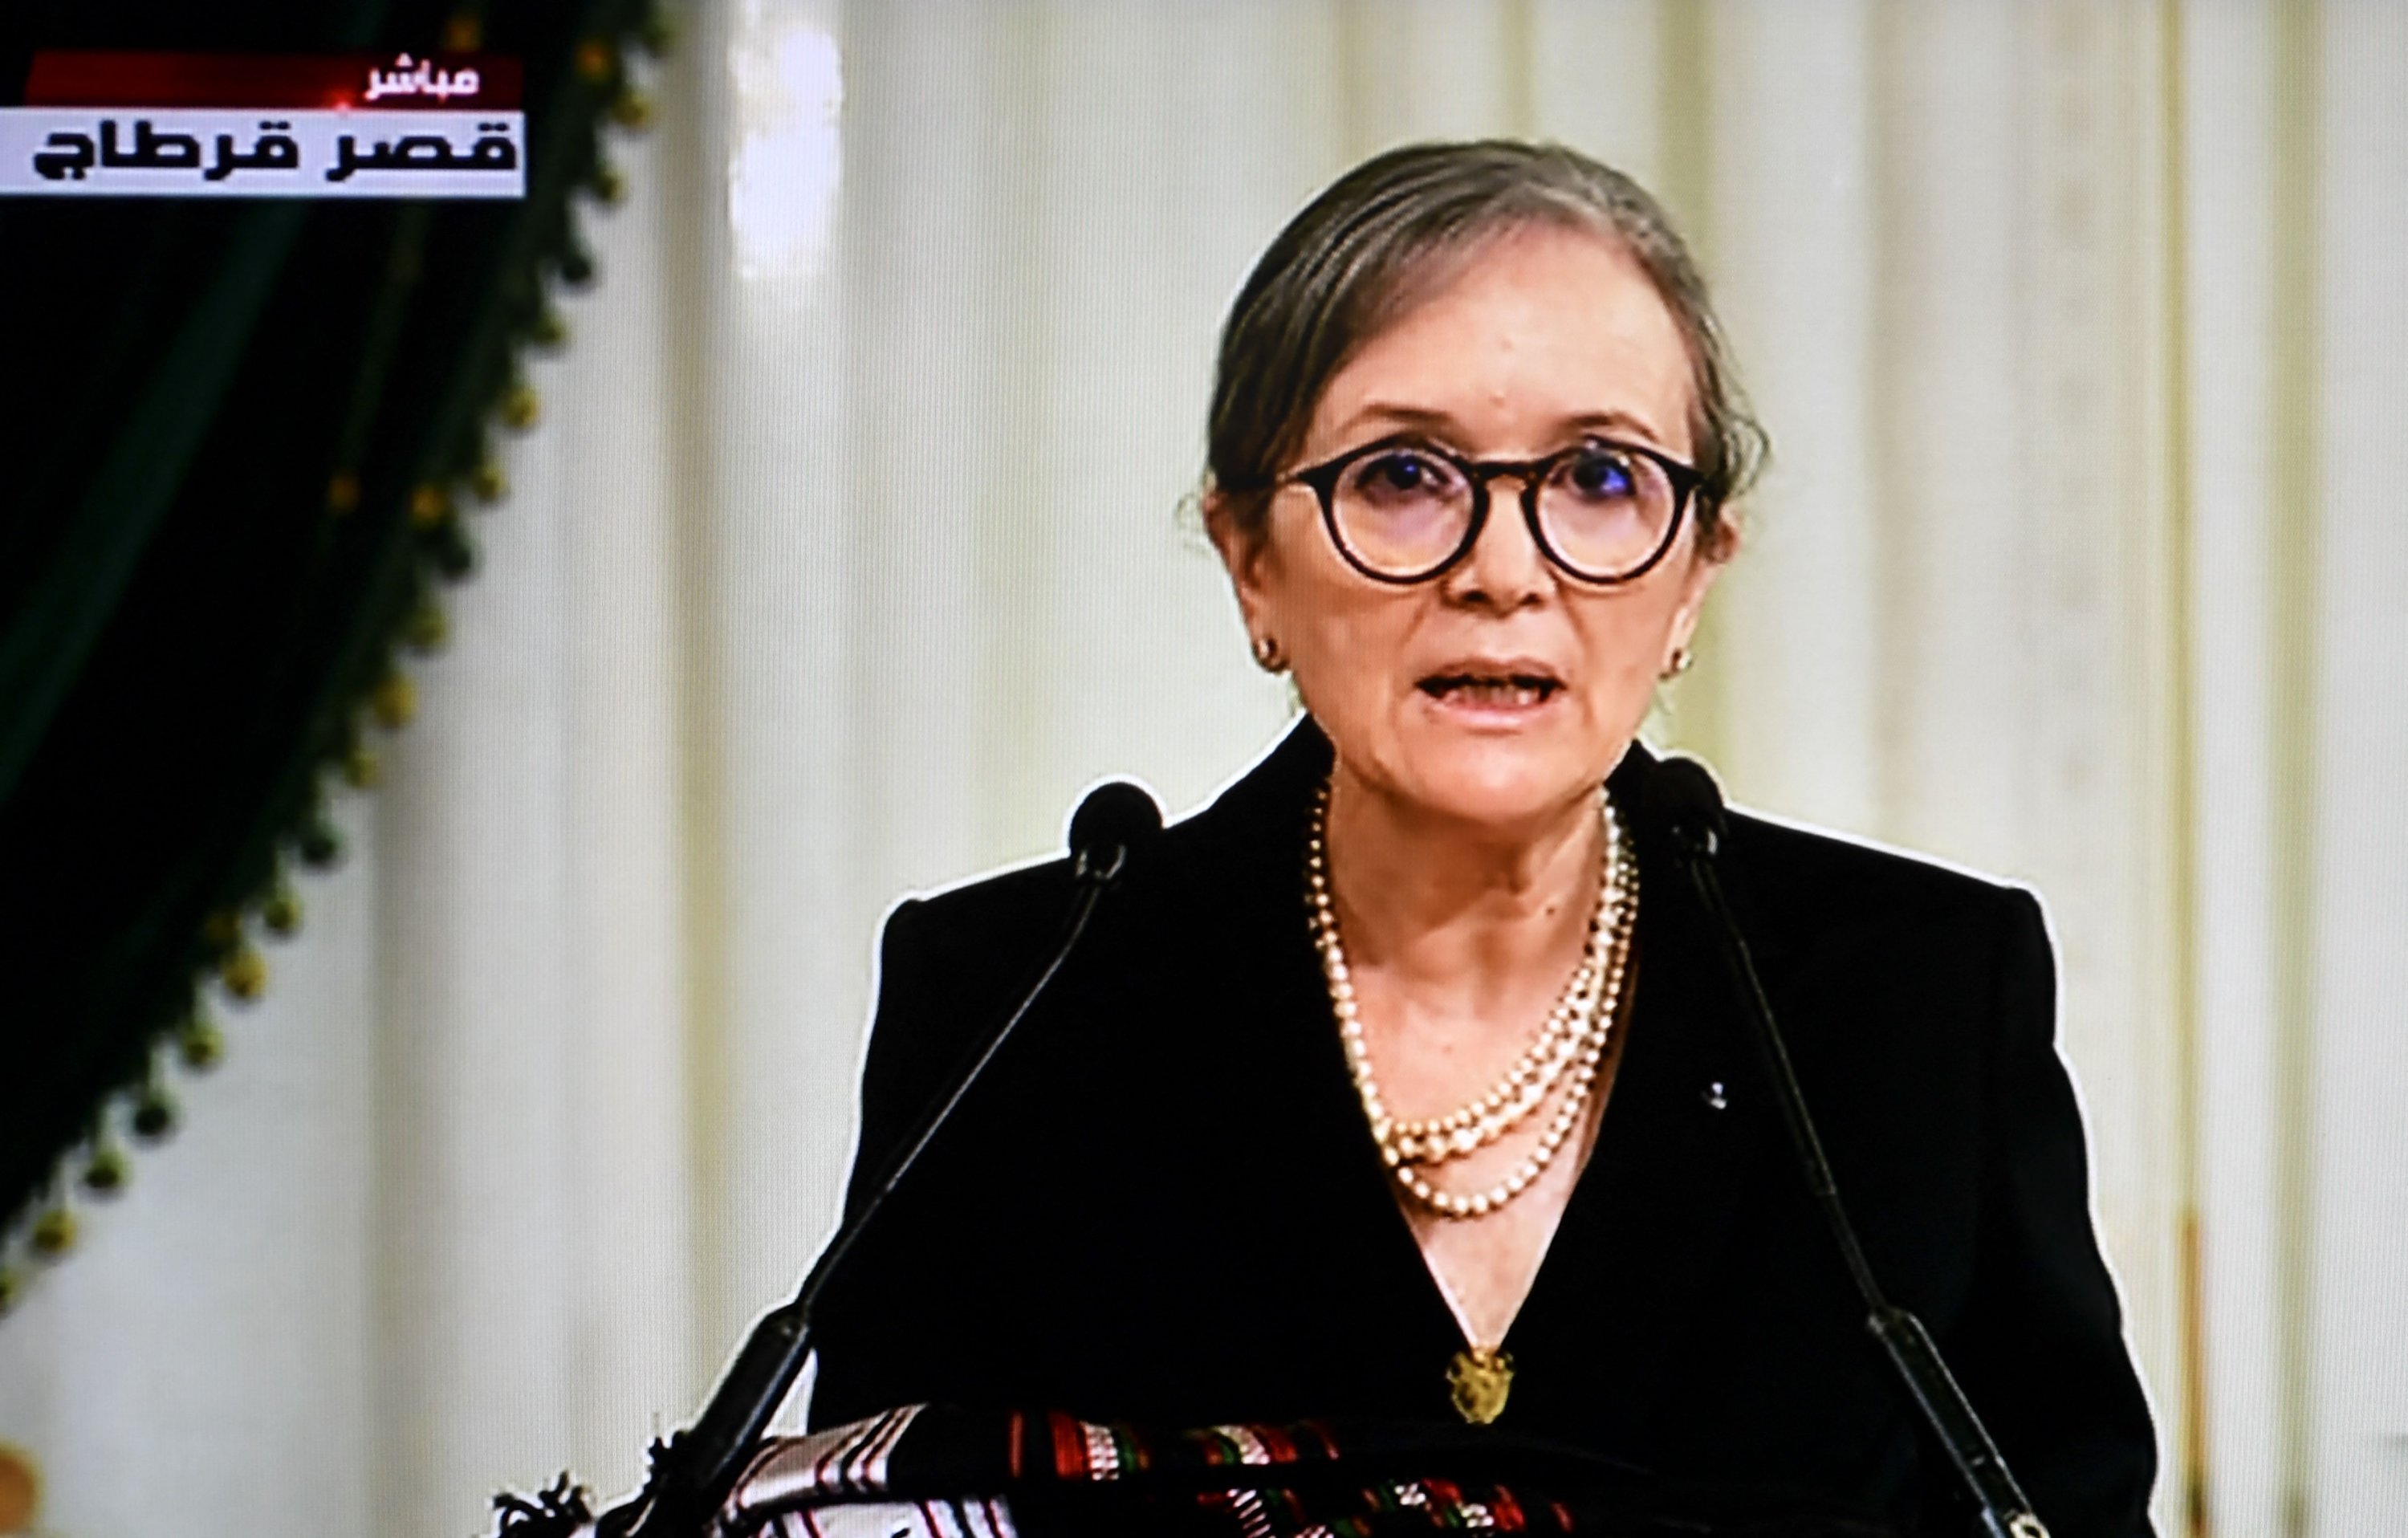 A screengrab shows Tunisia's national television broadcast of Prime Minister Najla Bouden announcing the formation of a new government at the Carthage Palace, Tunis, Tunisia, Oct. 11, 2021. (AFP Photo)